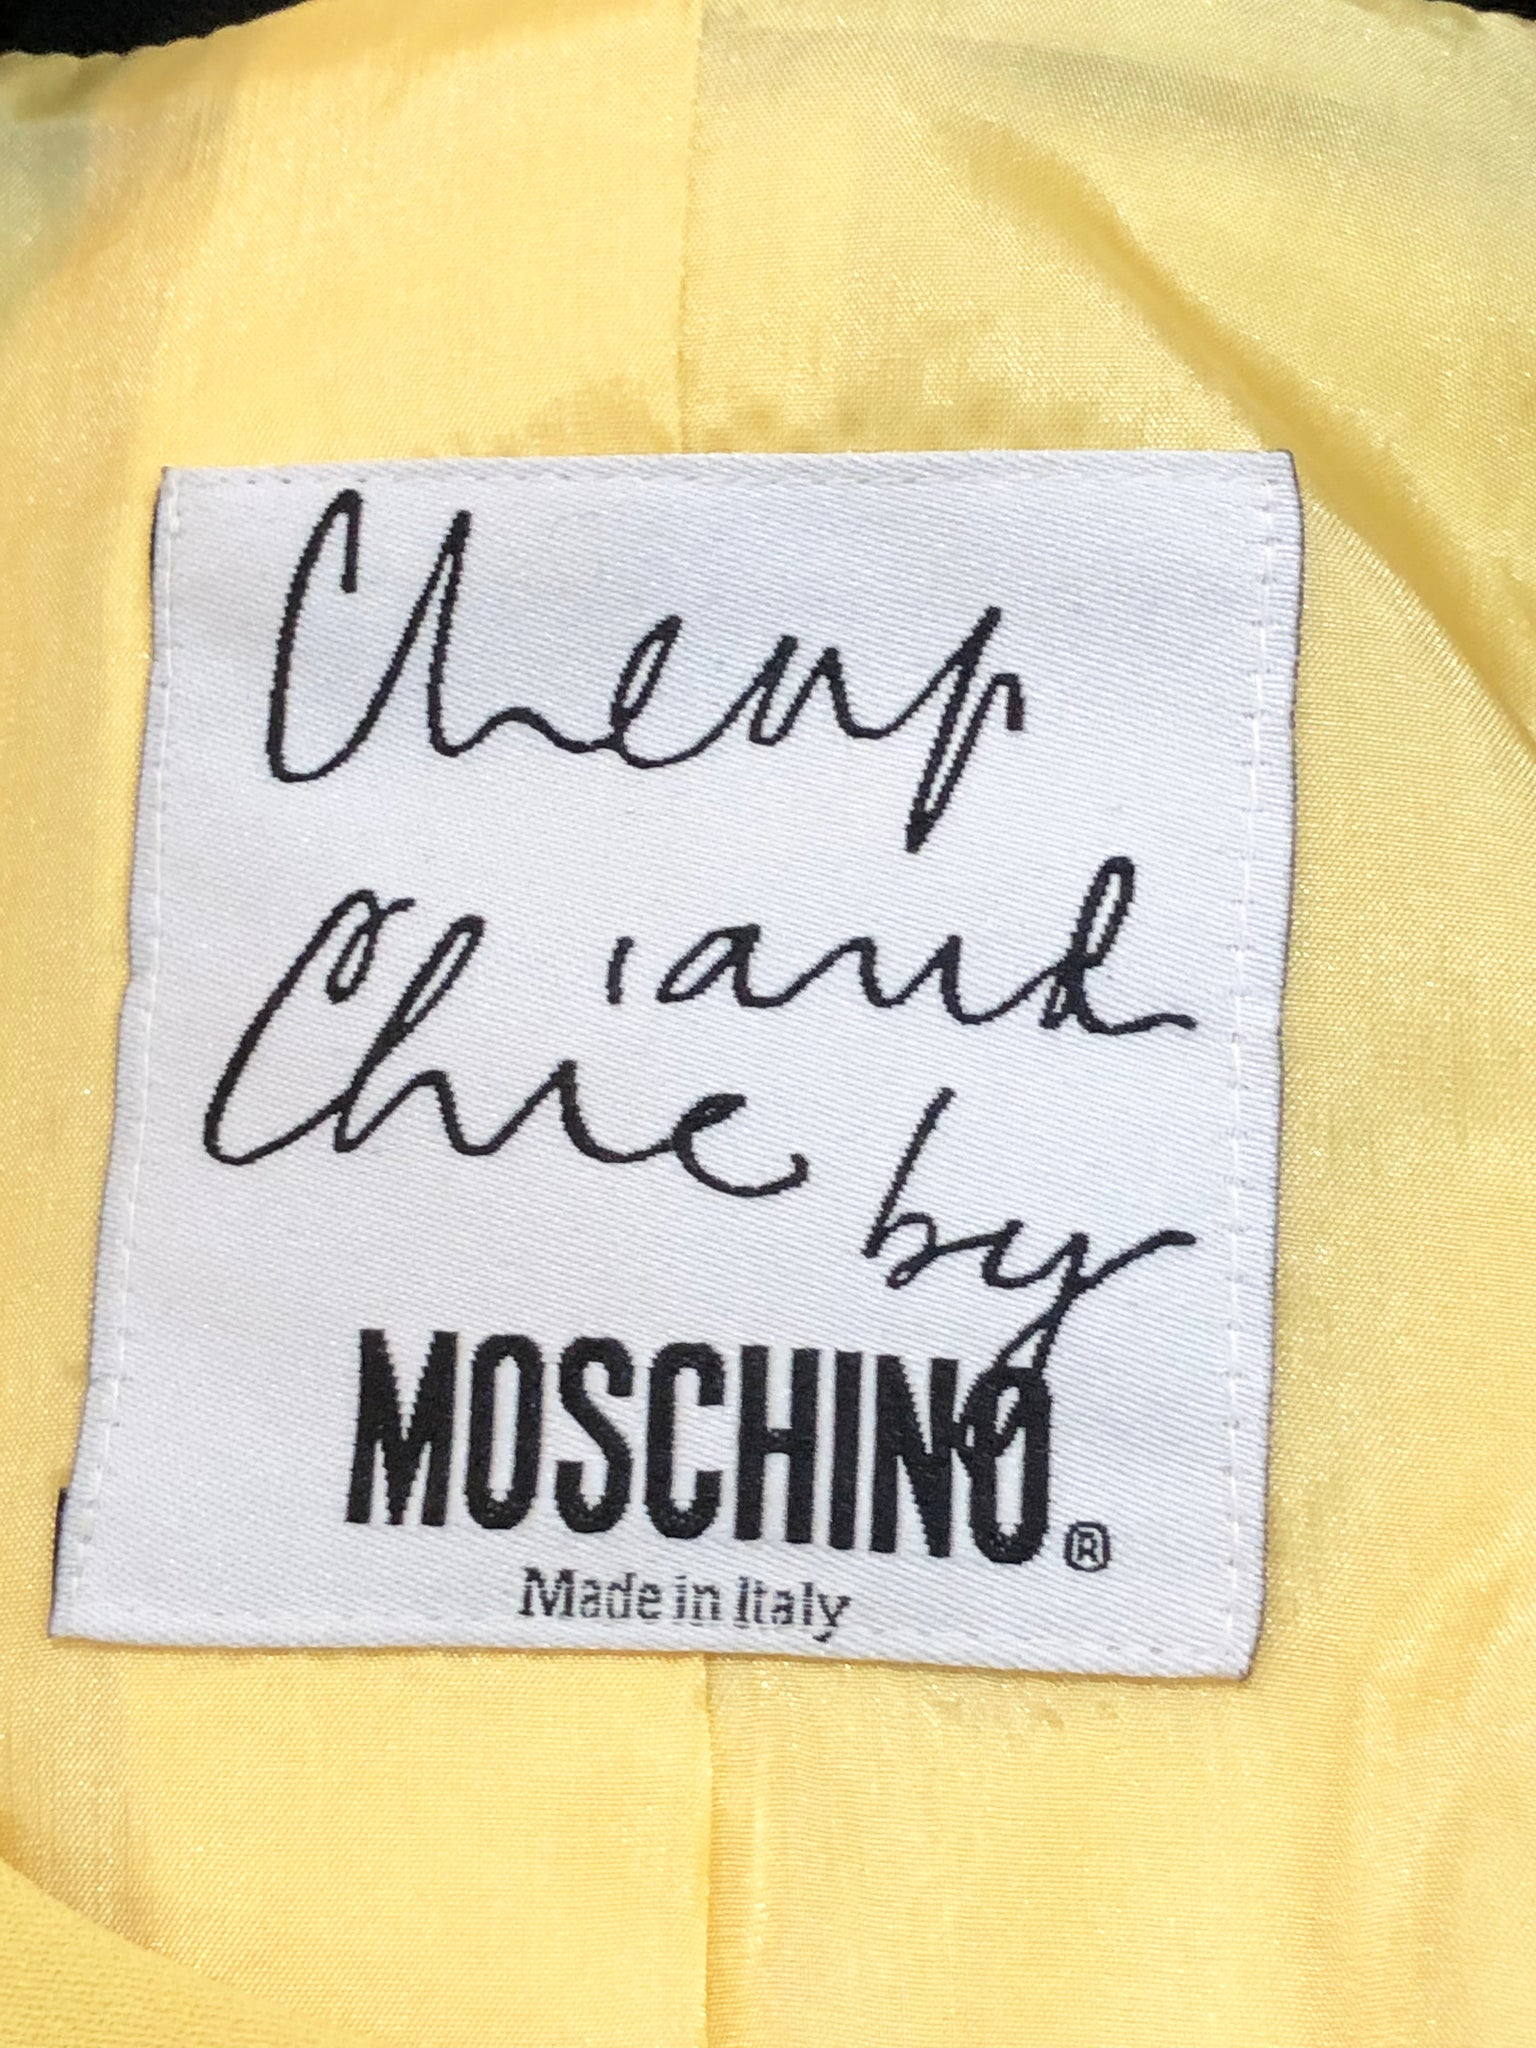 Moschino Yellow and Black Bumblebee Jacket Label 4 of 5